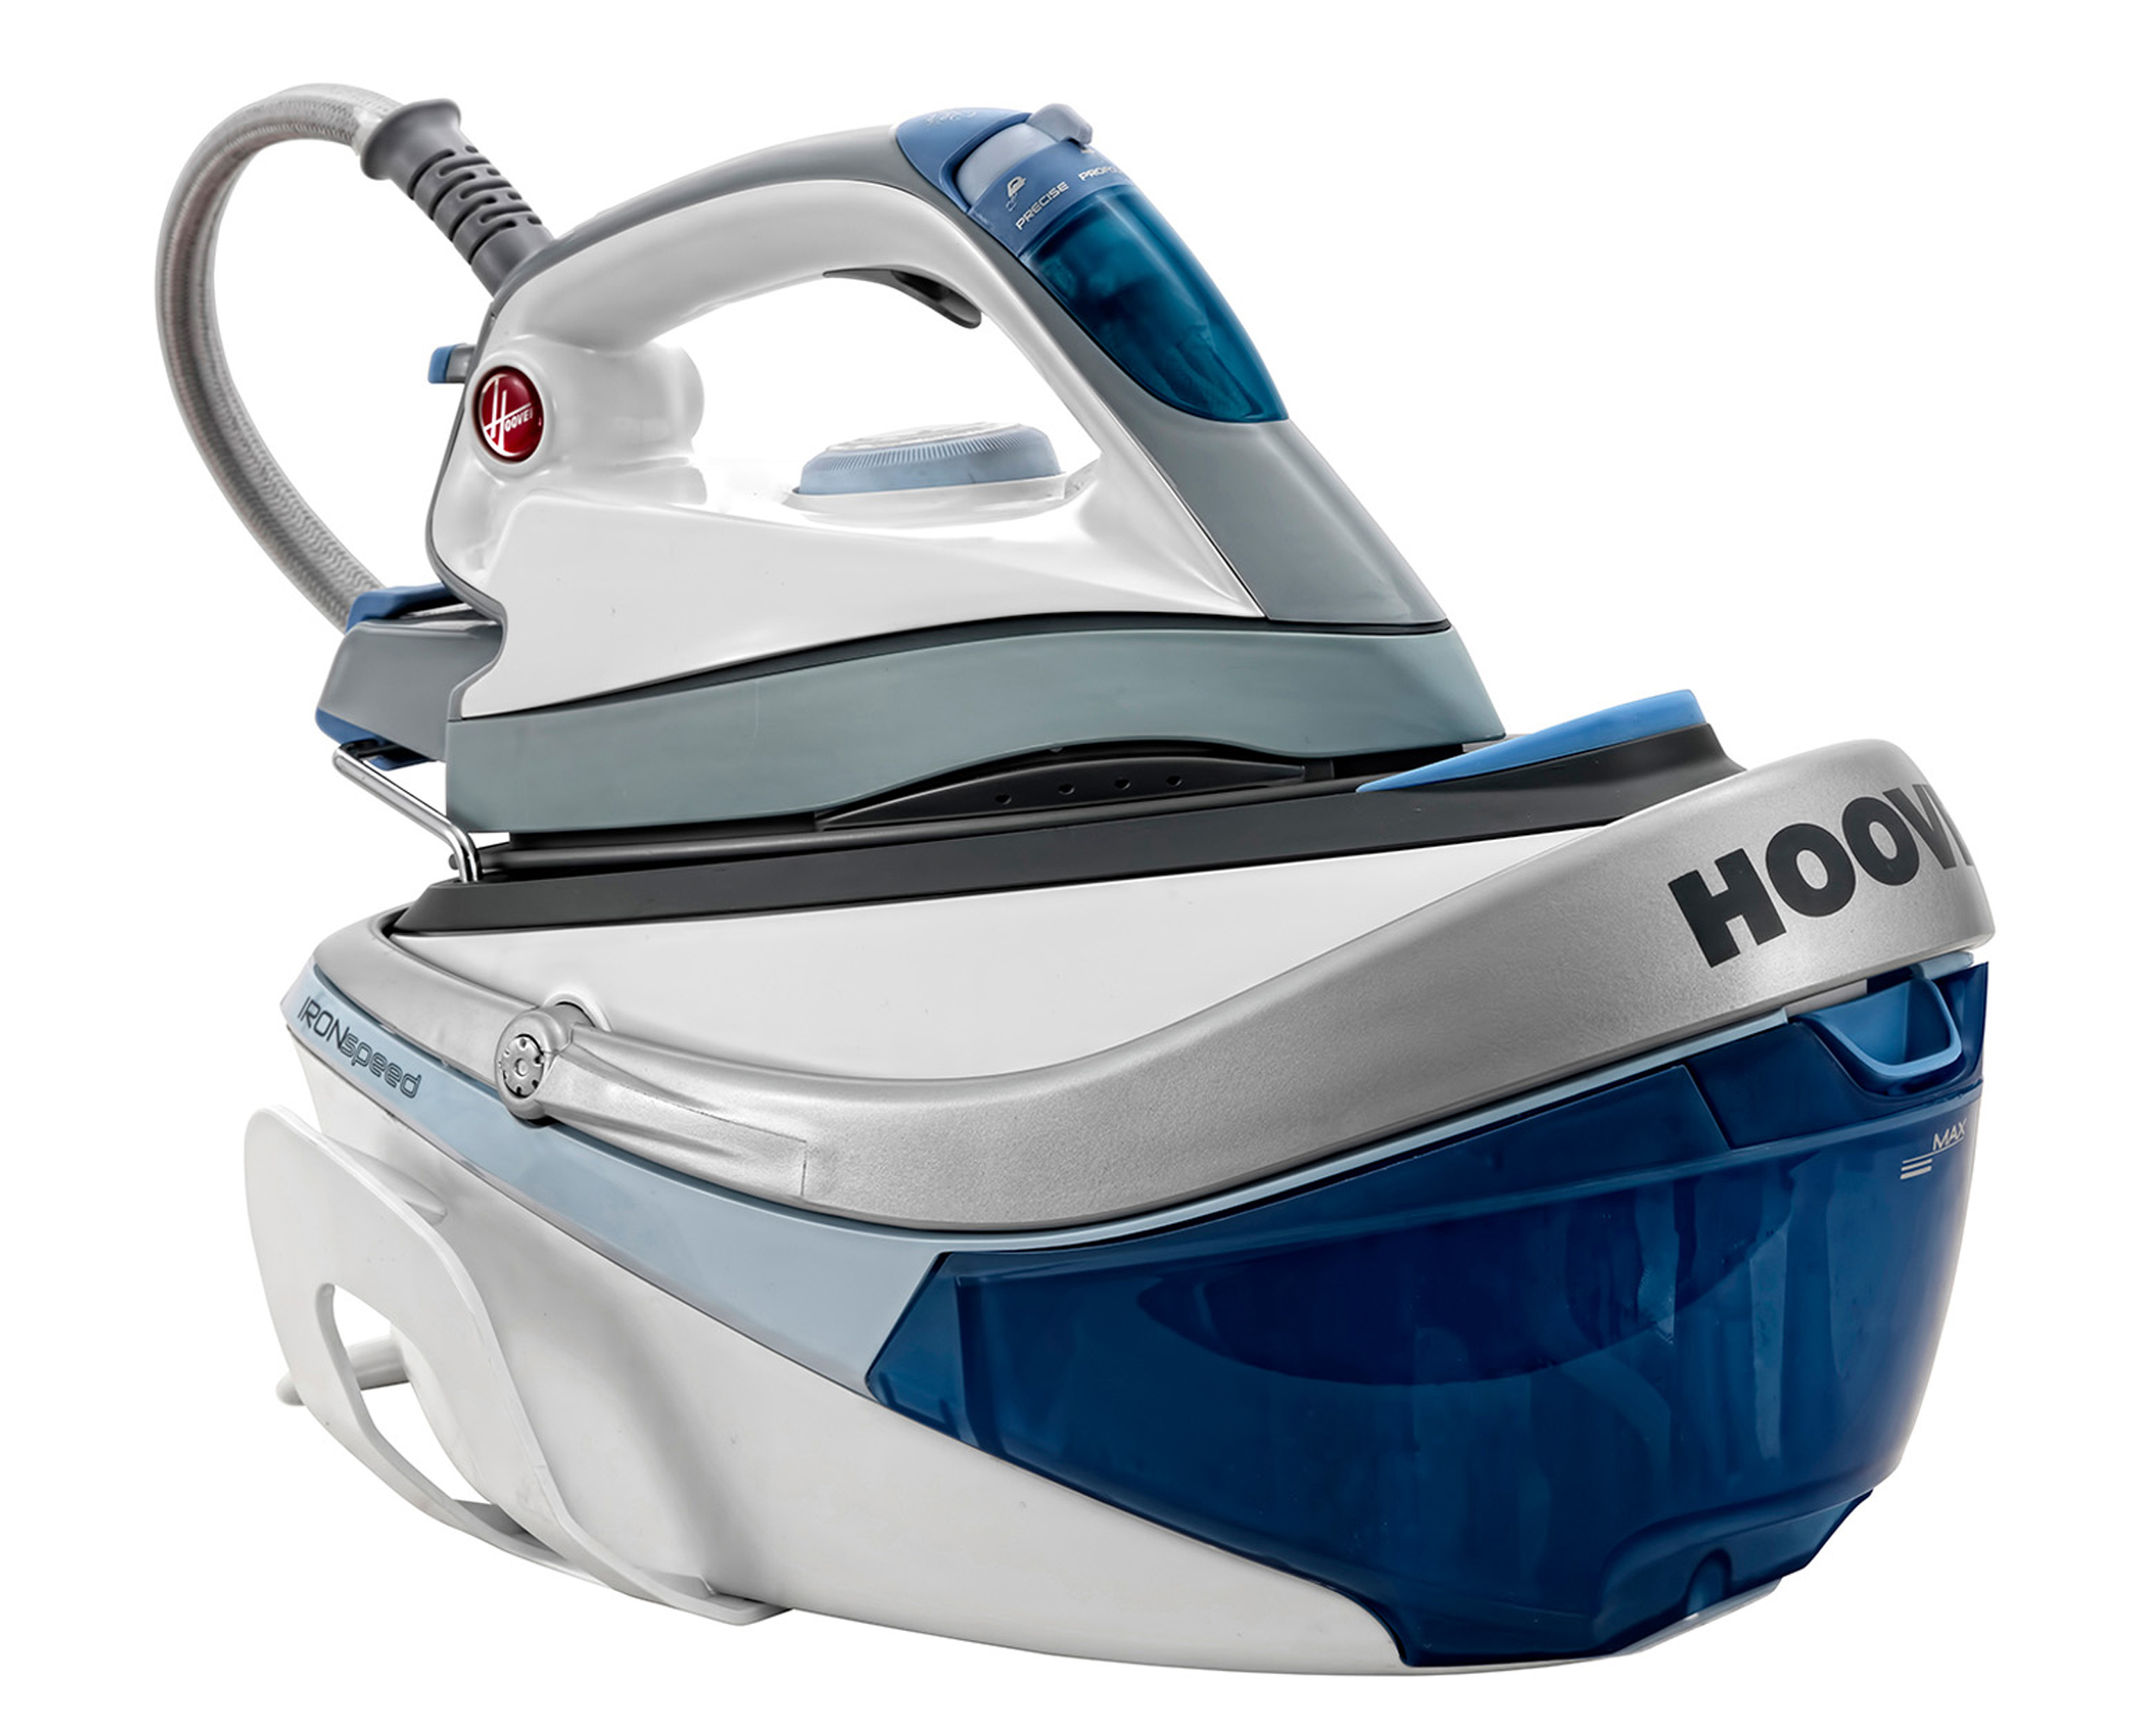 Hoover SRD IronSpeed Ceramic Plate Steam Generator Iron